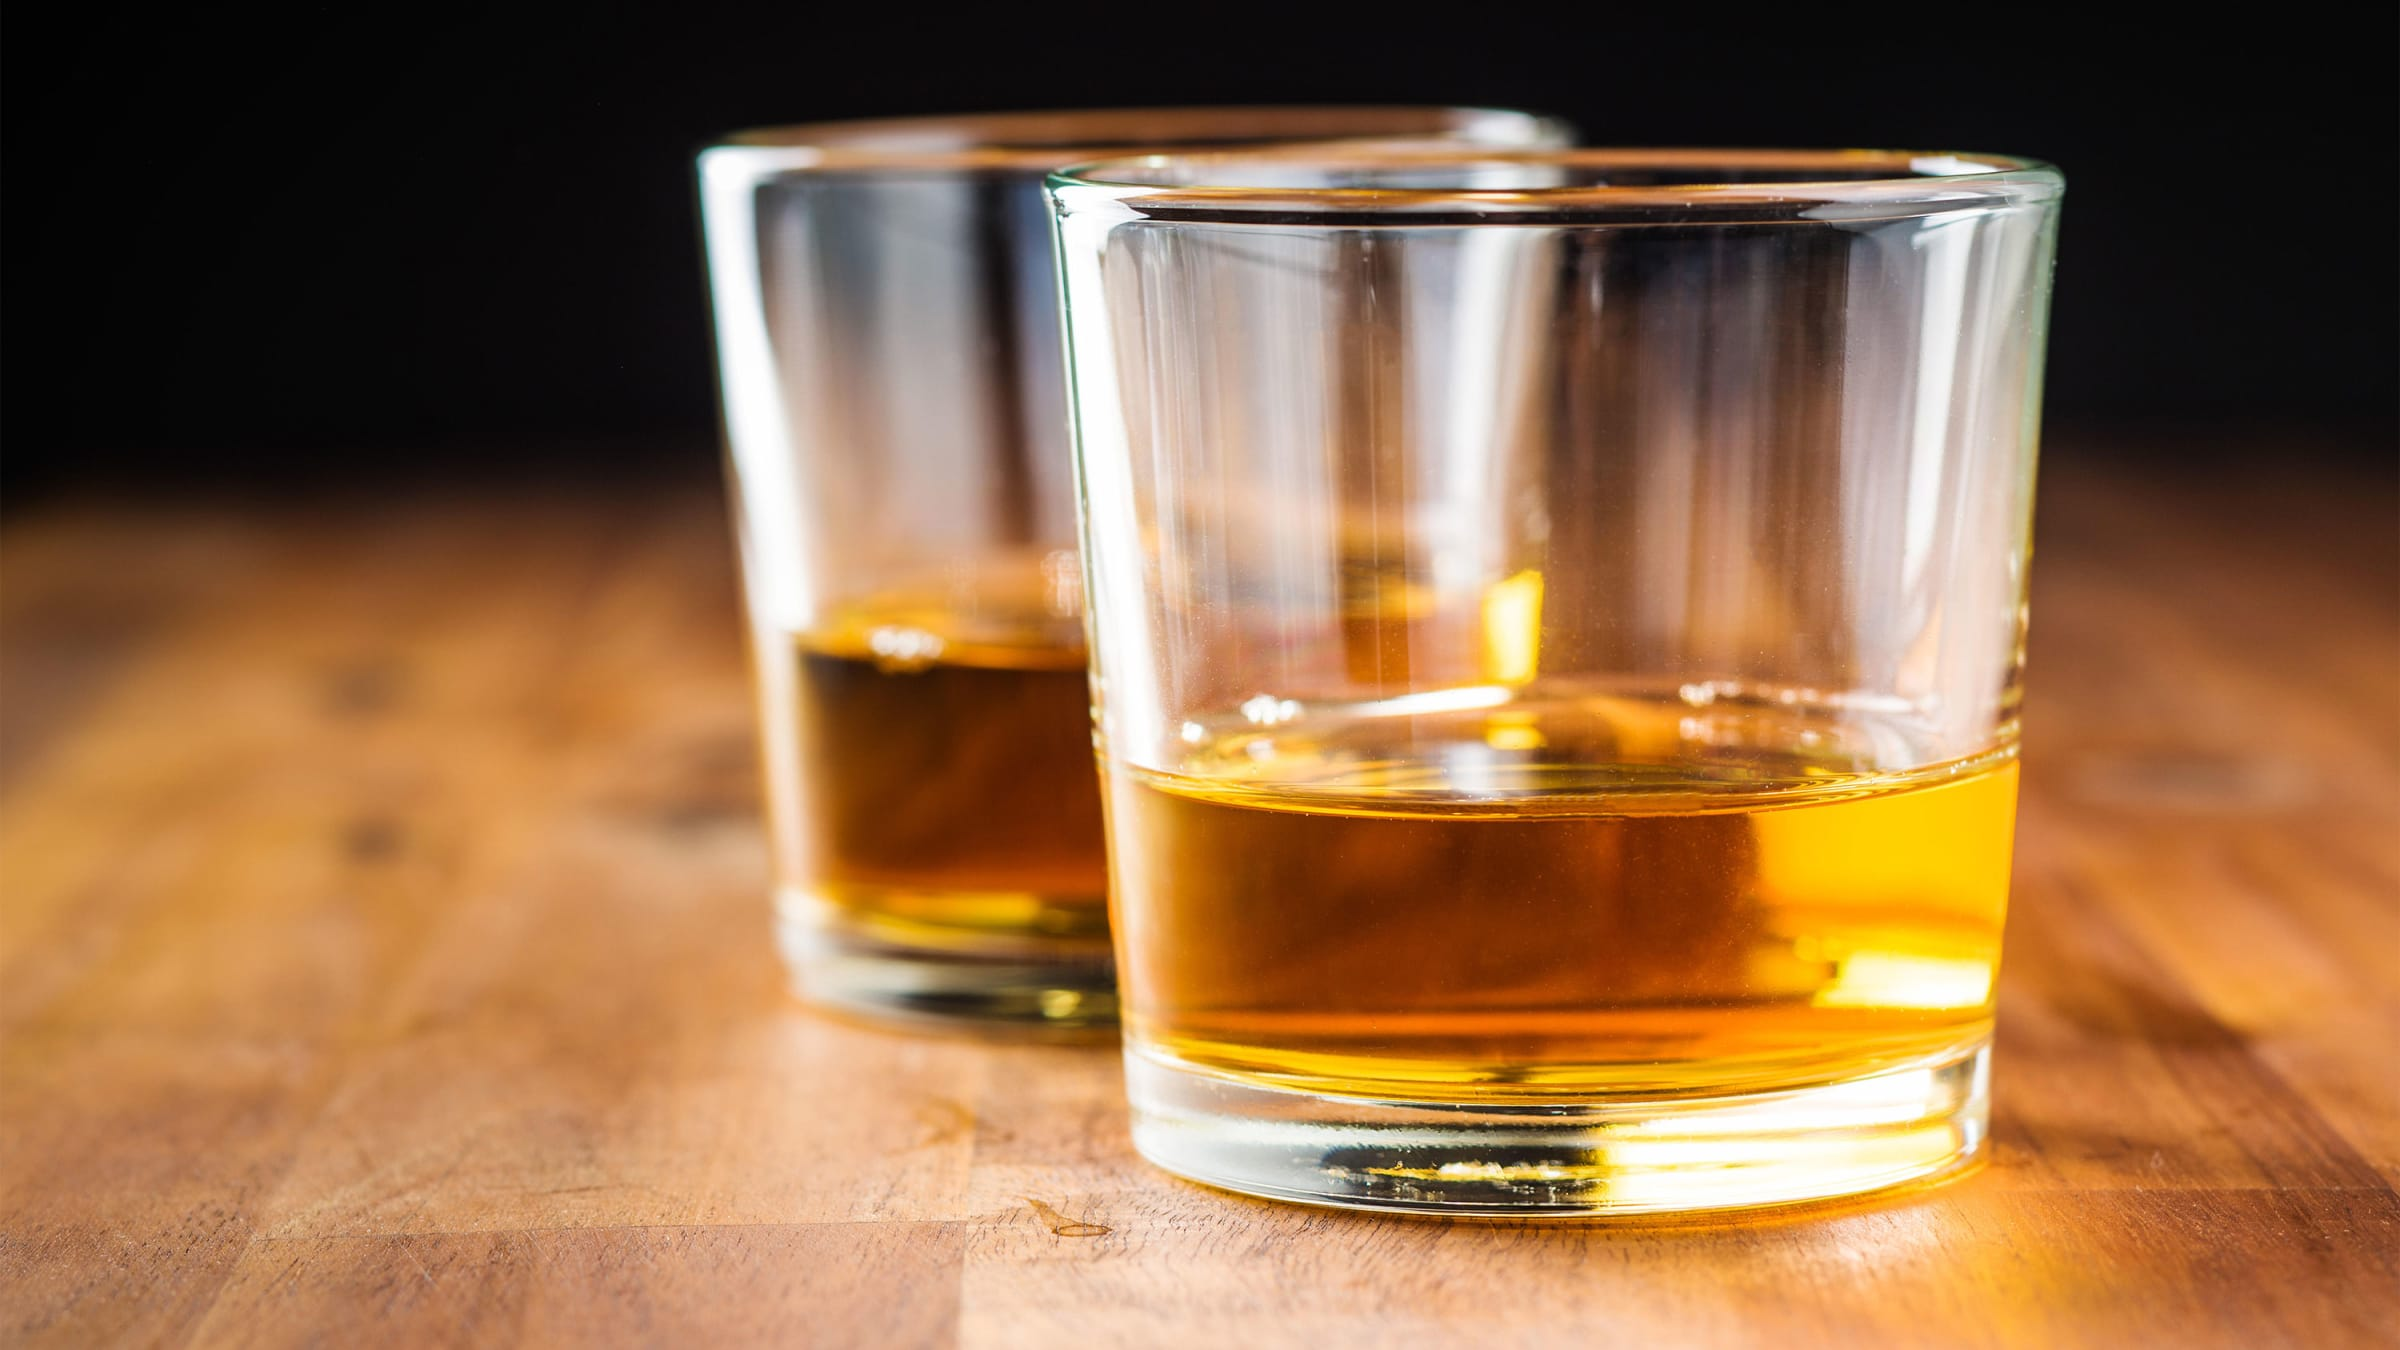 Why Does Whiskey Taste Like Whiskey An Excerpt From Lew Bryson S New Book Whiskey Master Class